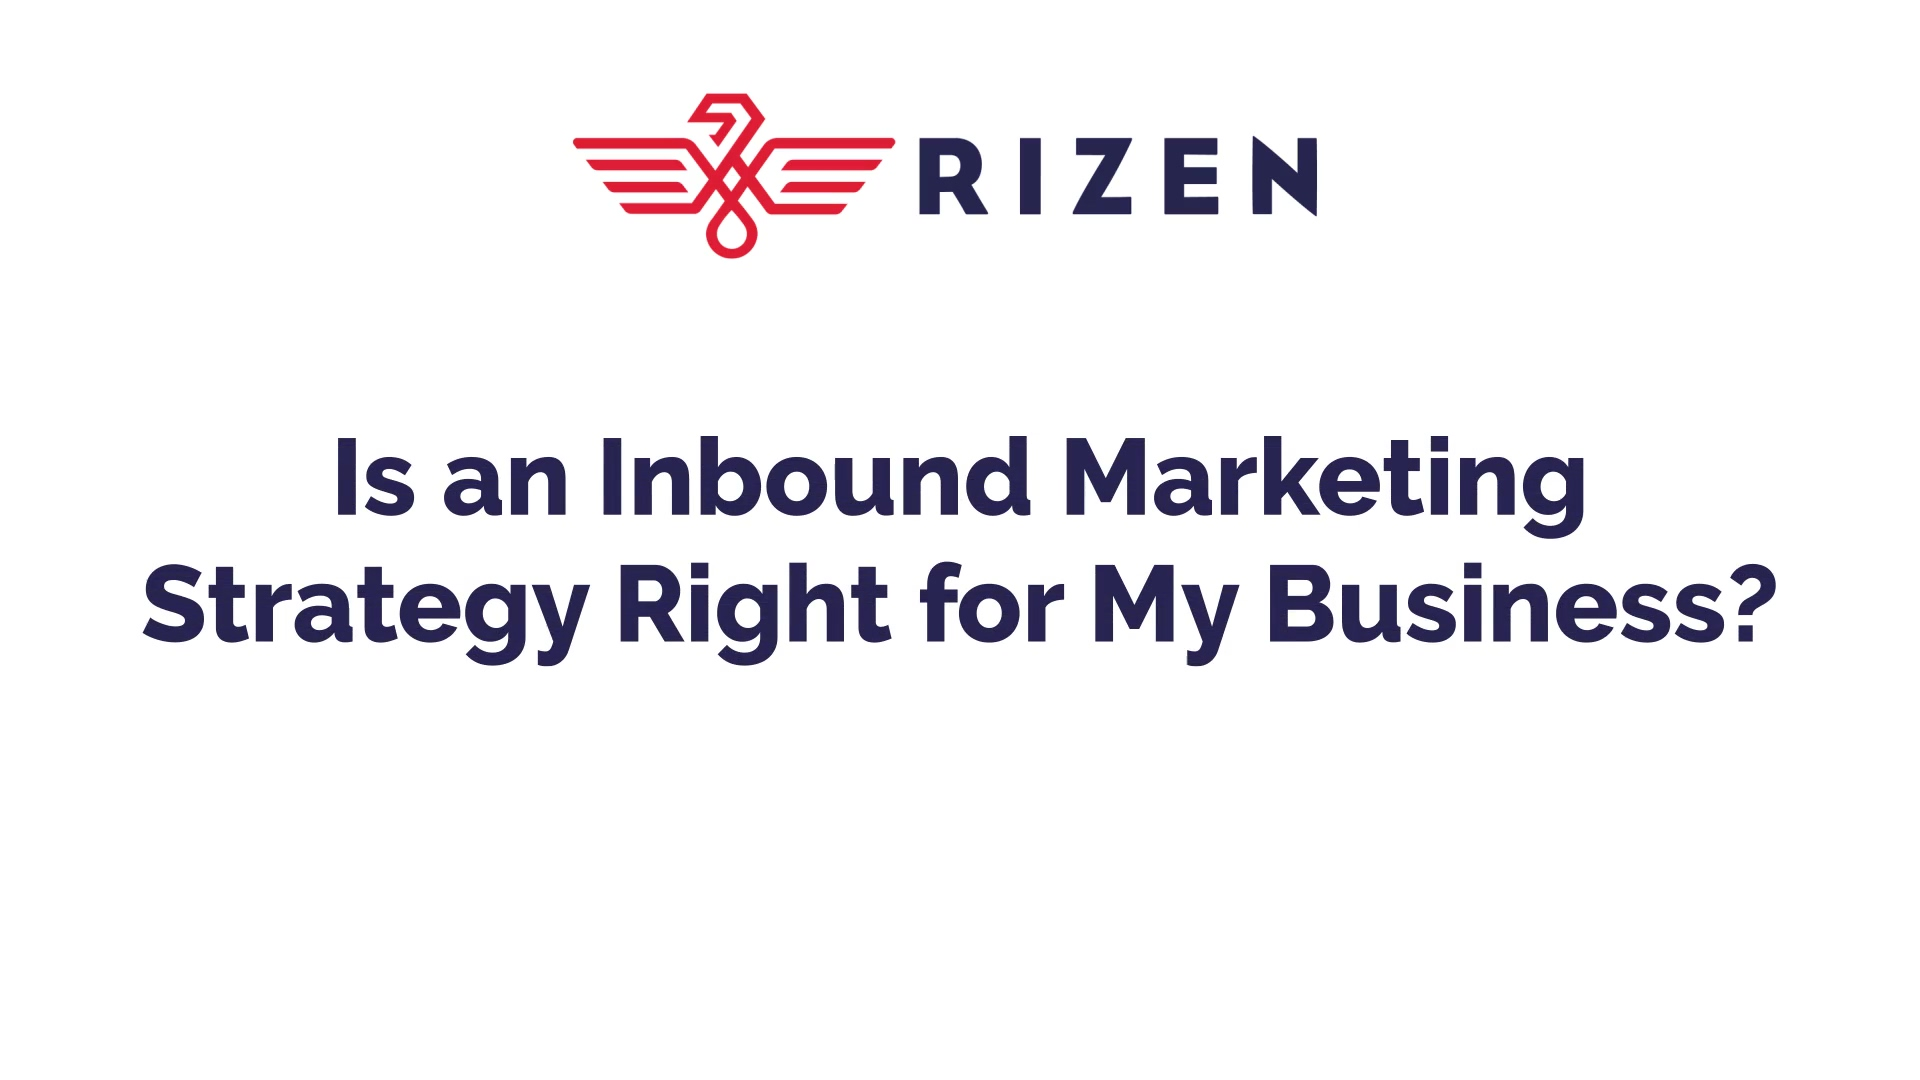 RizenInboundMarketingRevised